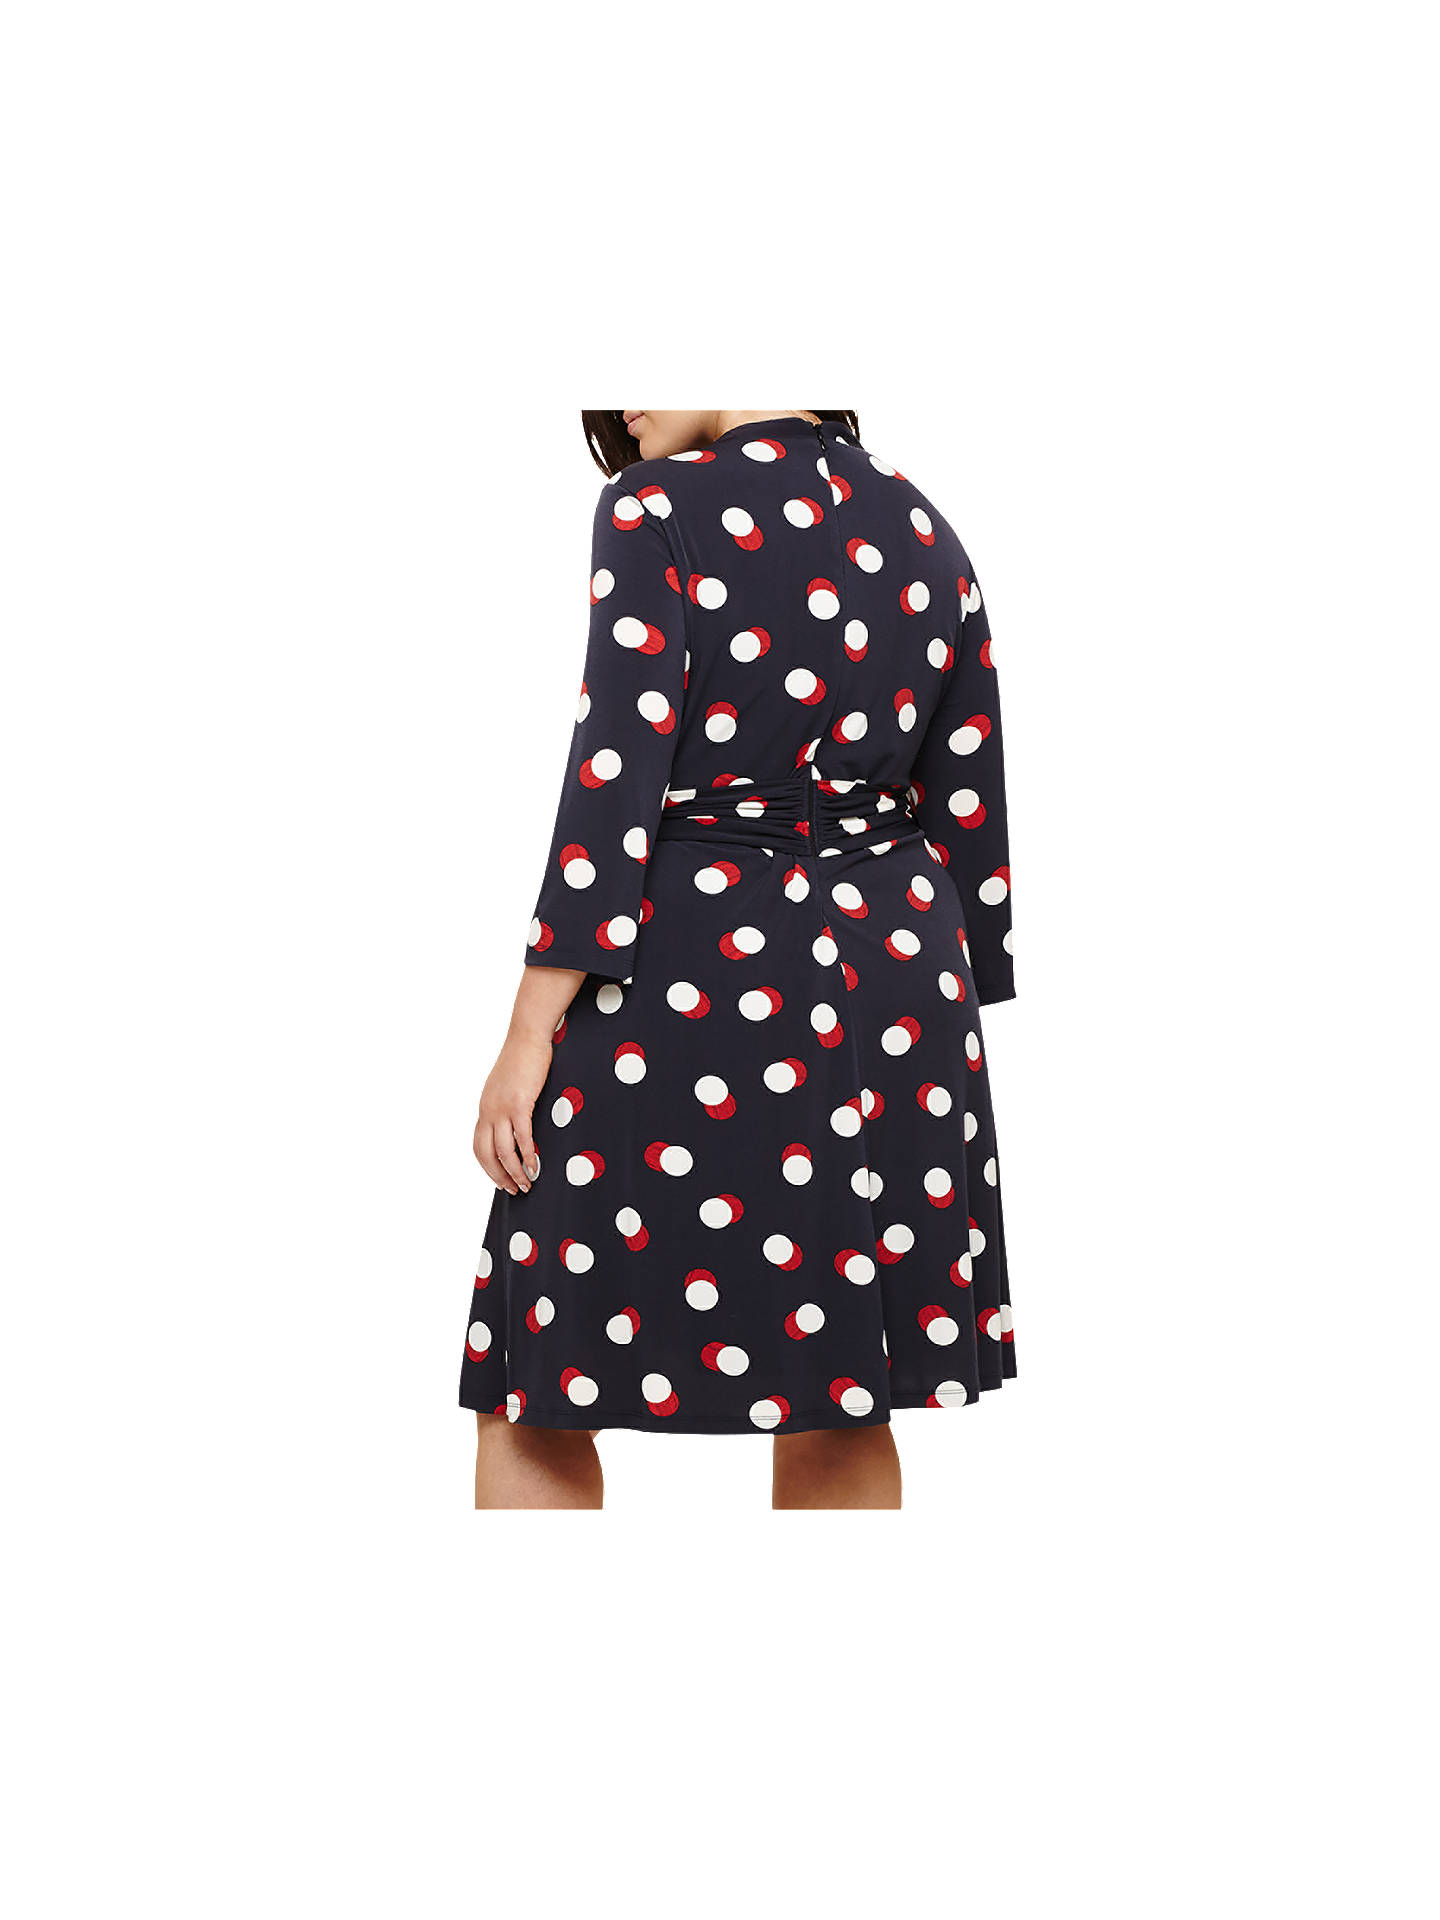 BuyStudio 8 Anne Spot Dress, Navy/Multi, 14 Online at johnlewis.com